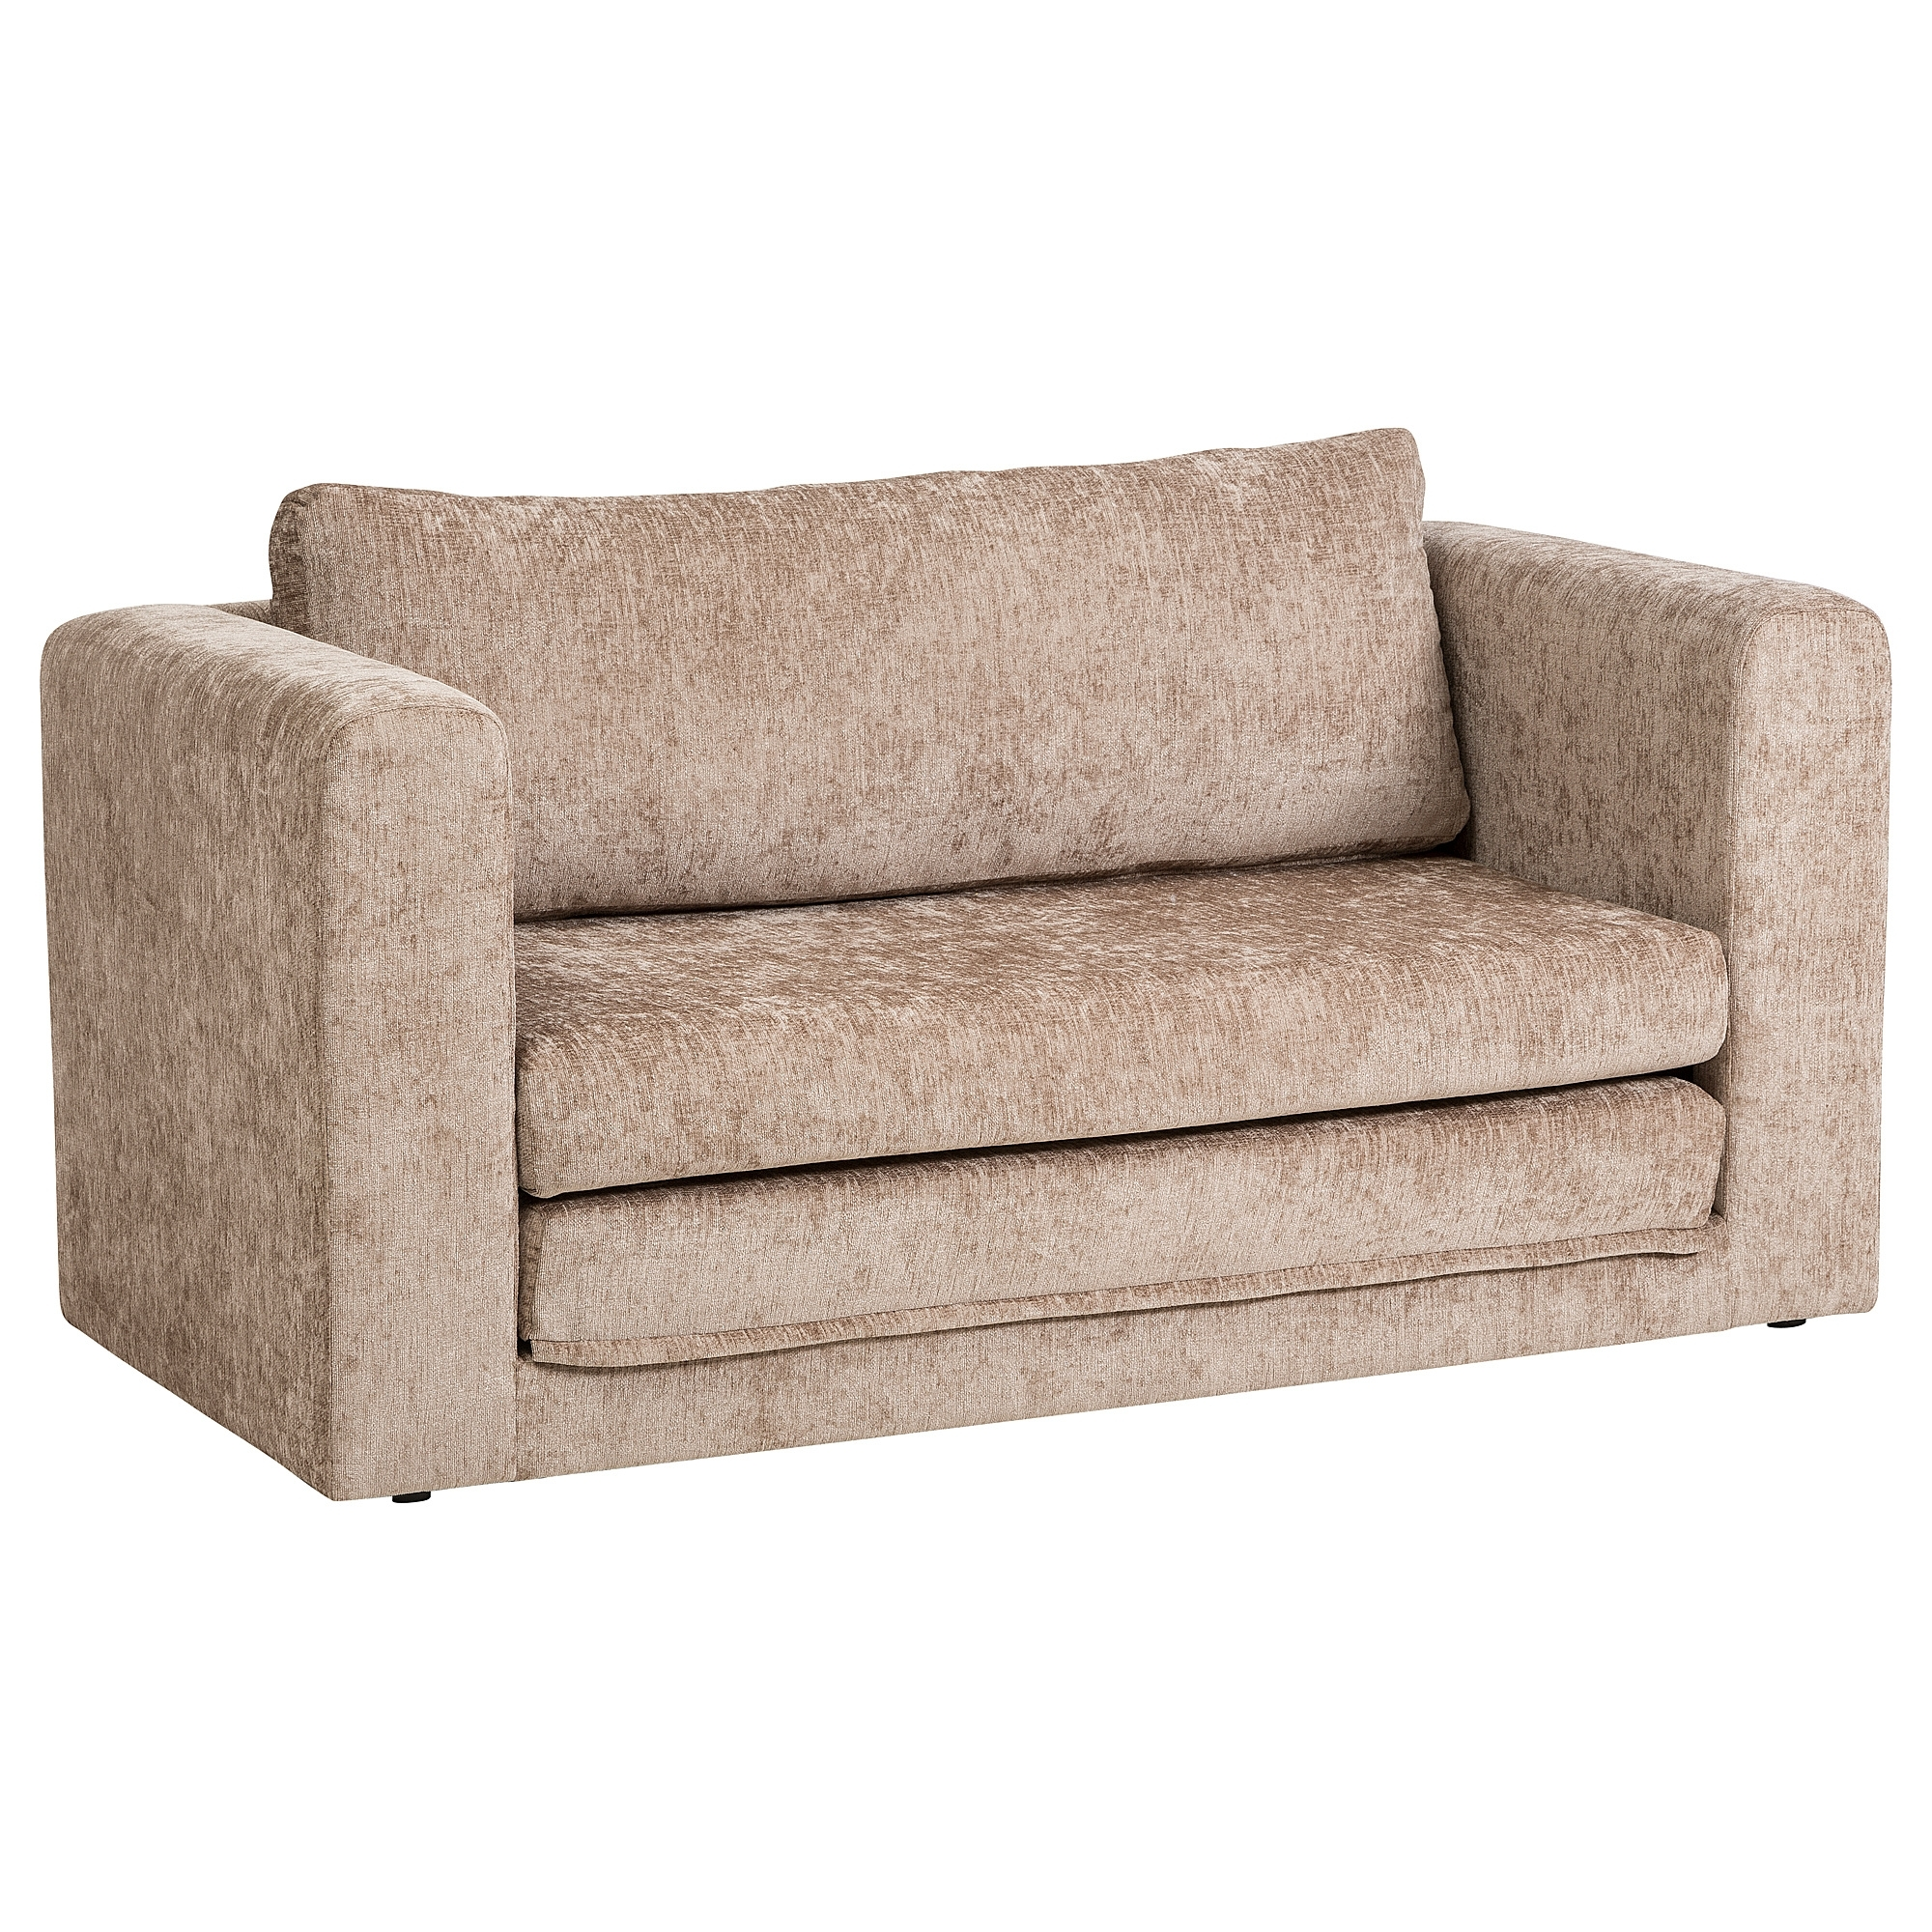 Favorite Askeby 2 Seat Sofa Bed Beige – Ikea Pertaining To Ikea Two Seater Sofas (View 15 of 20)